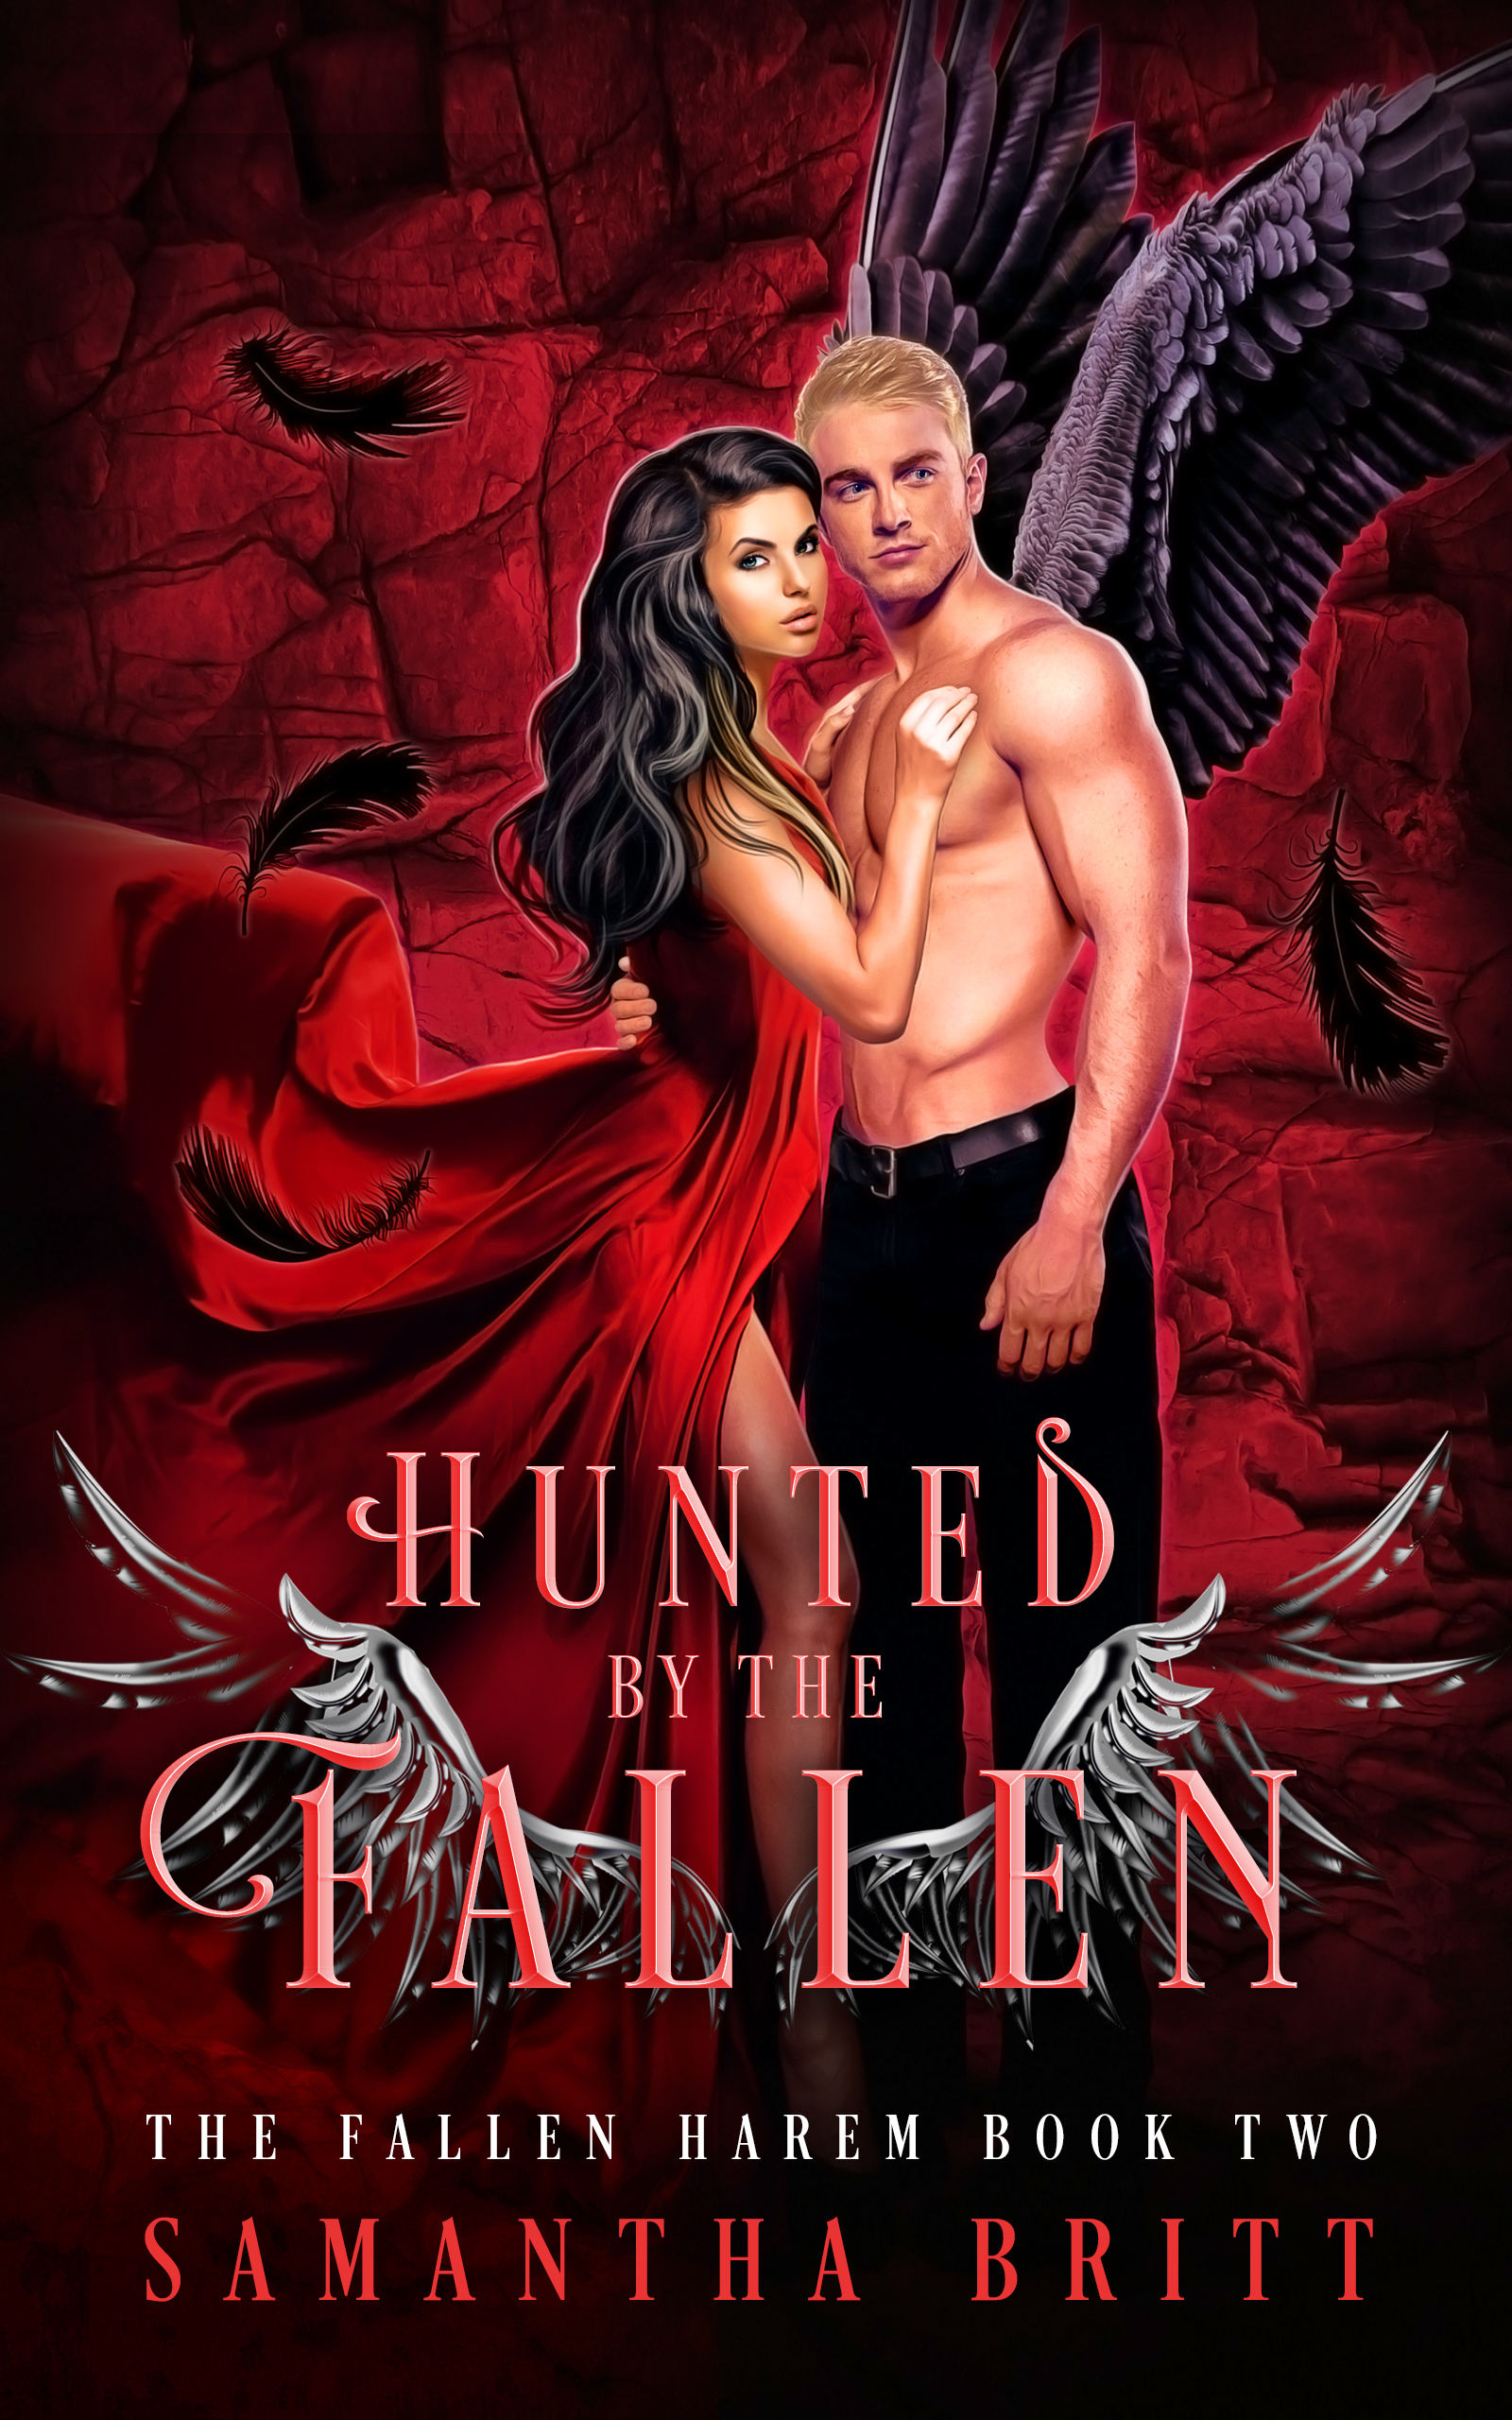 Hunted by the Fallen - Book 2